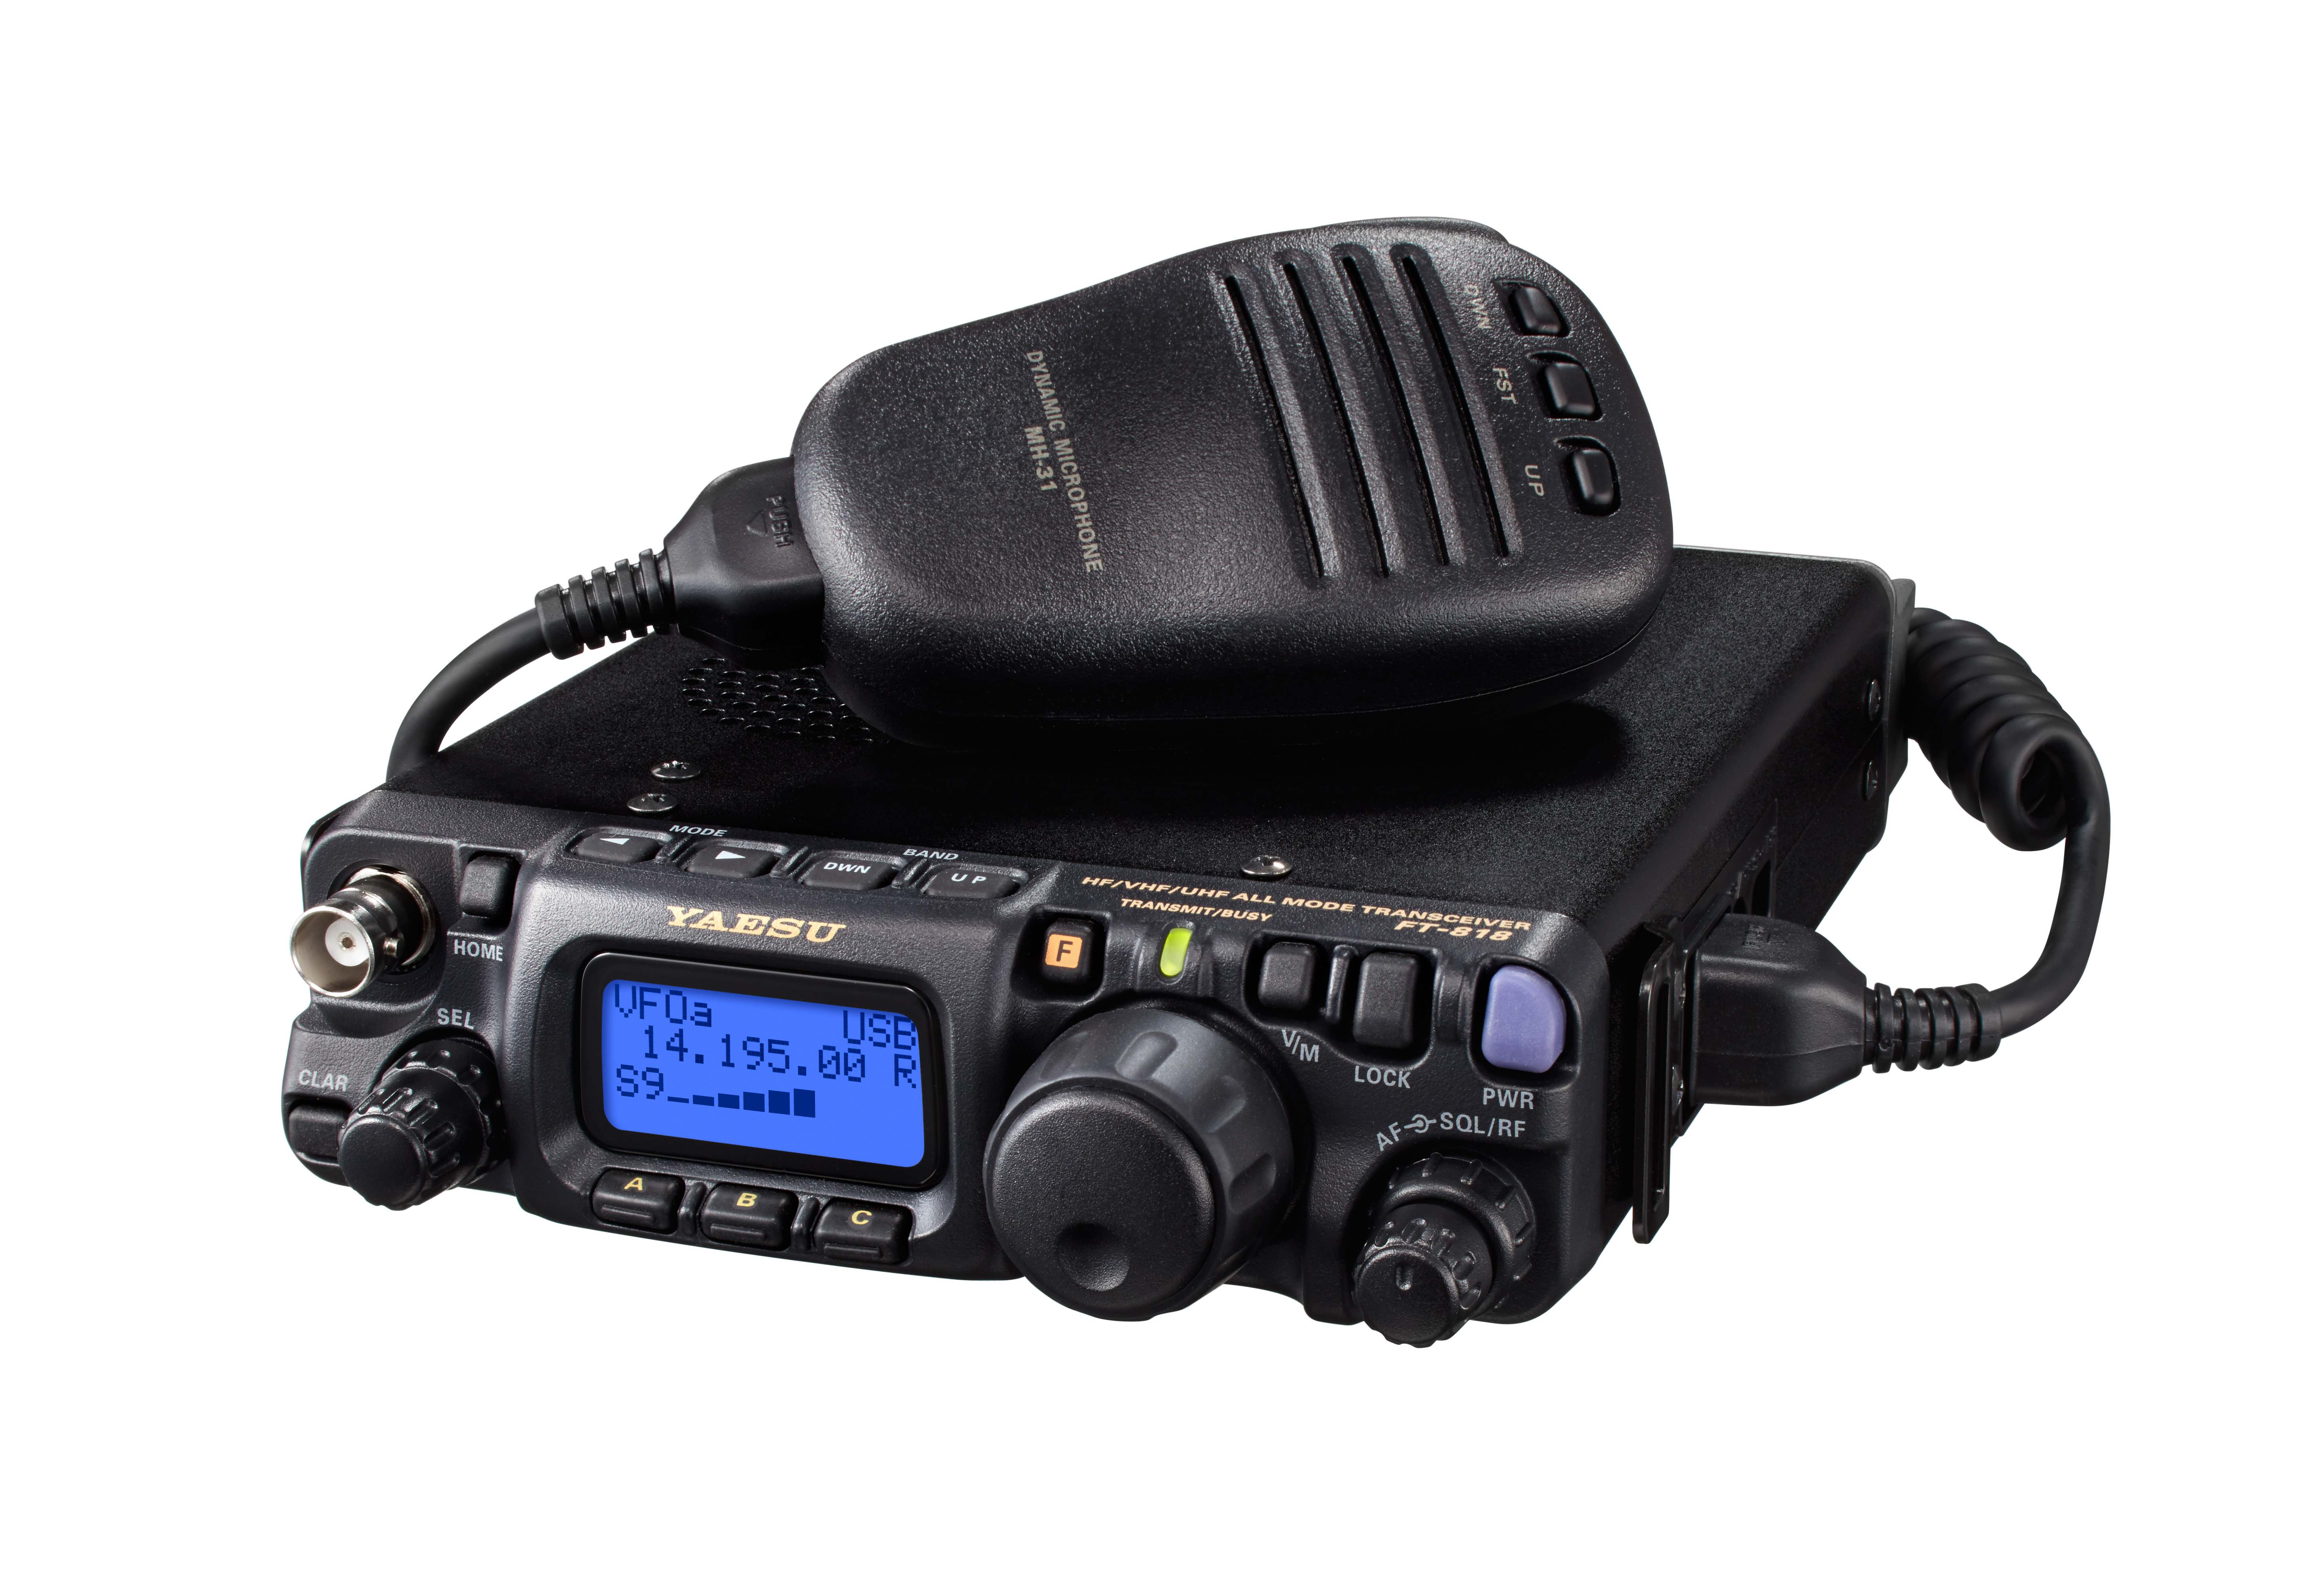 New Yaesu FT-818ND – Buck McDaniel